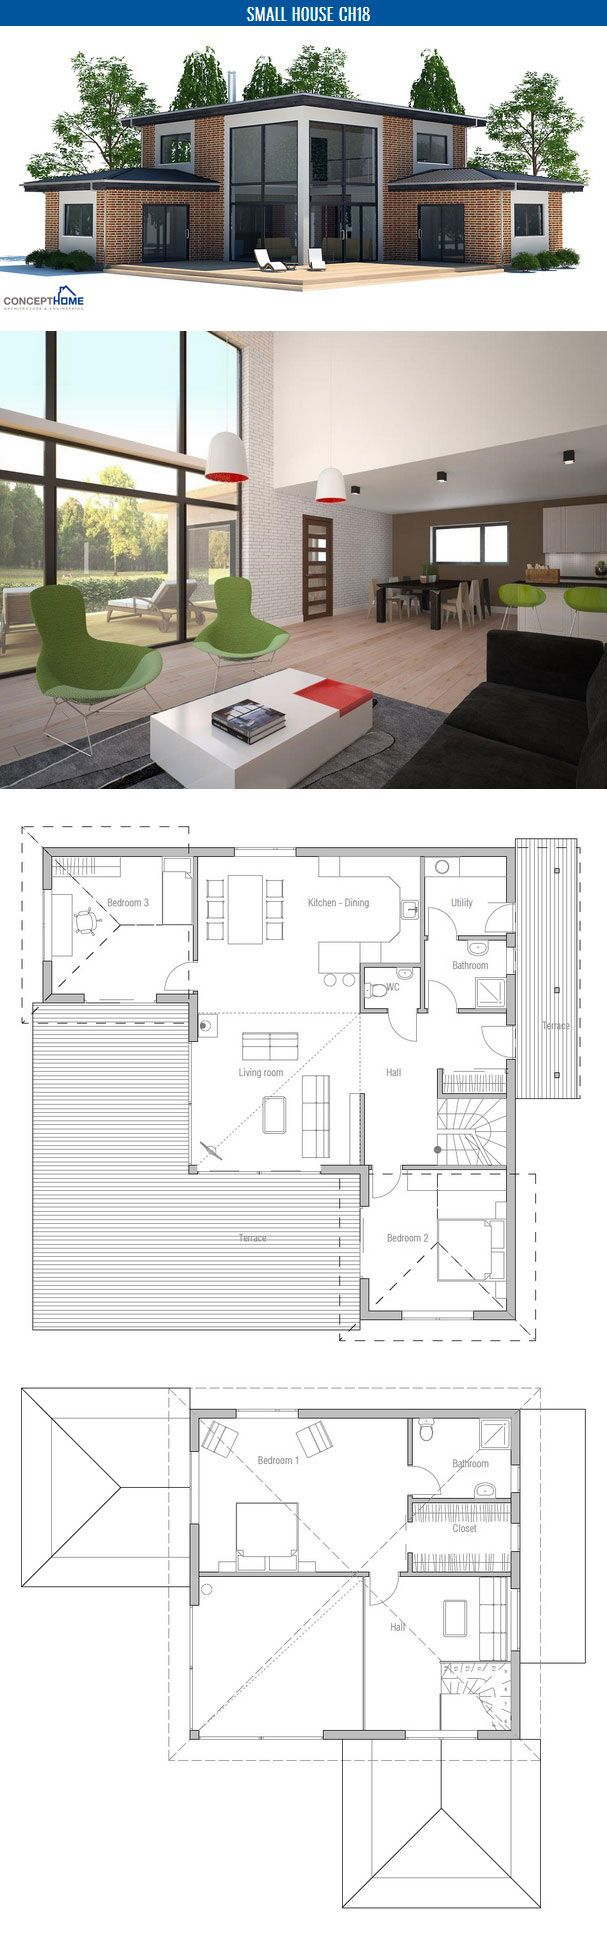 413 best Living images on Pinterest | Architecture, Floor plans and ...